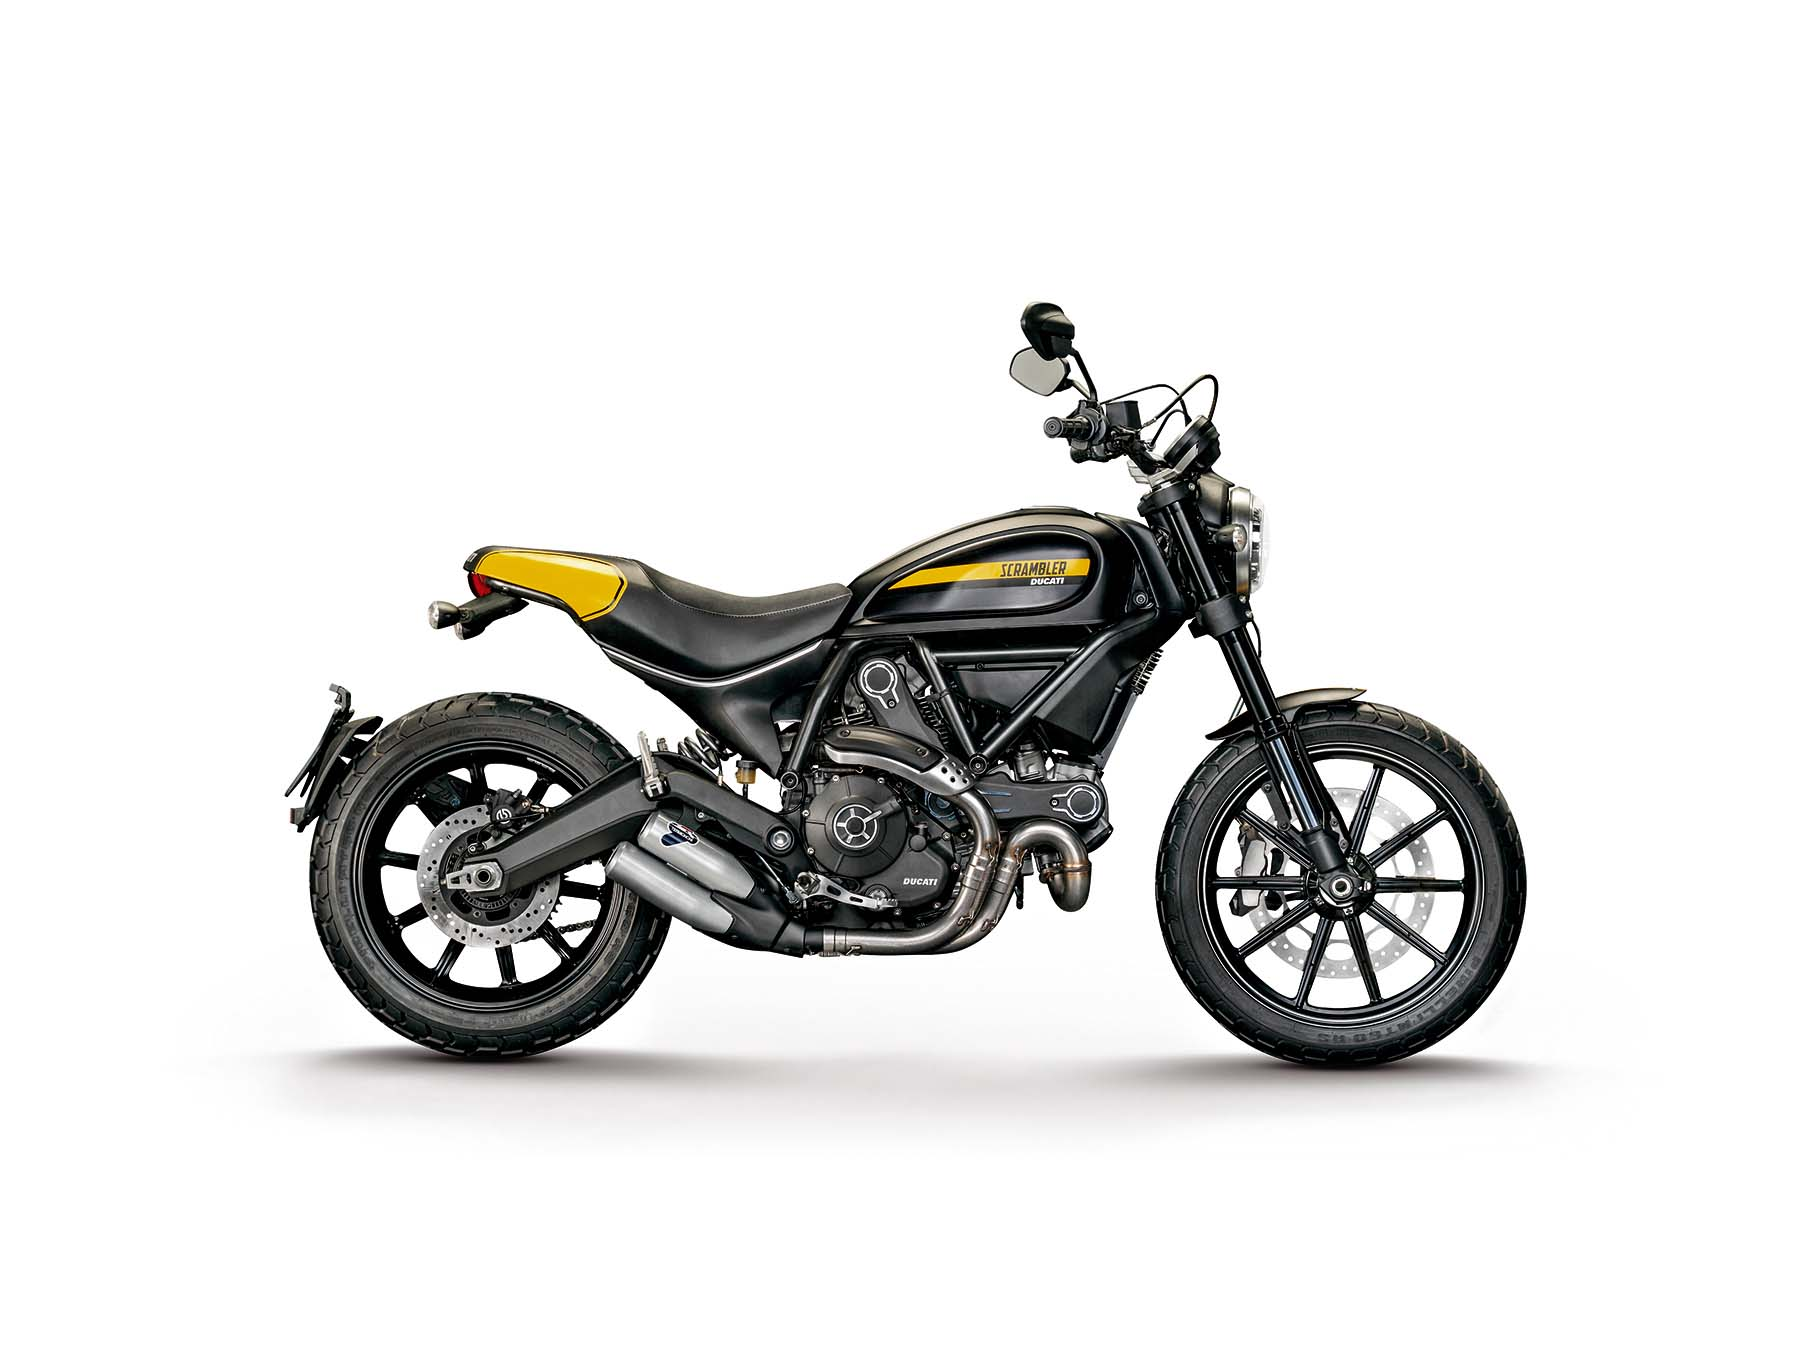 2015-Ducati-Scrambler-Full-Throttle-10.jpg